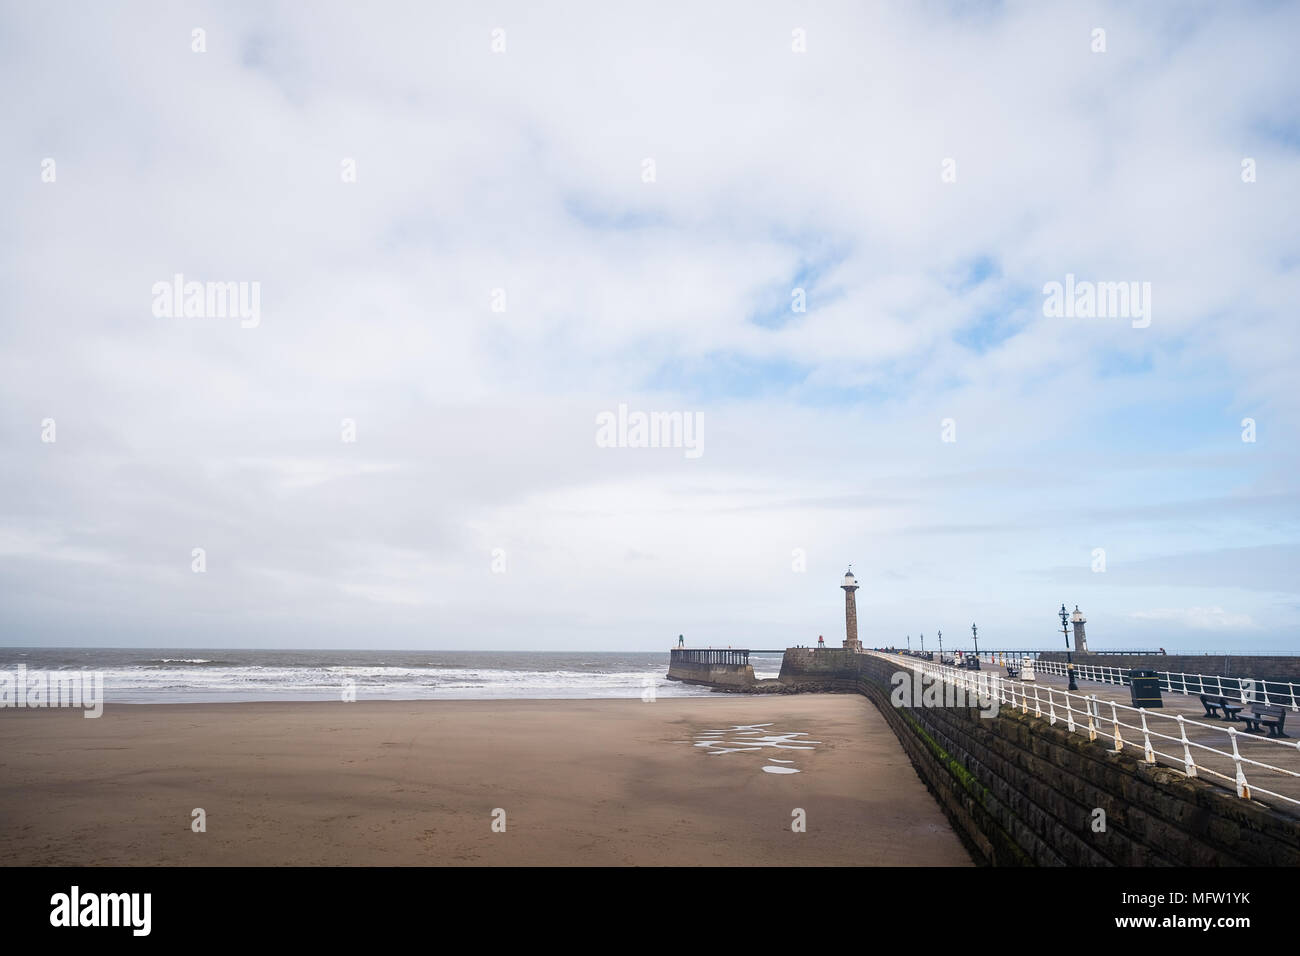 Whitby pier, North Yorkshire, UK - Stock Image